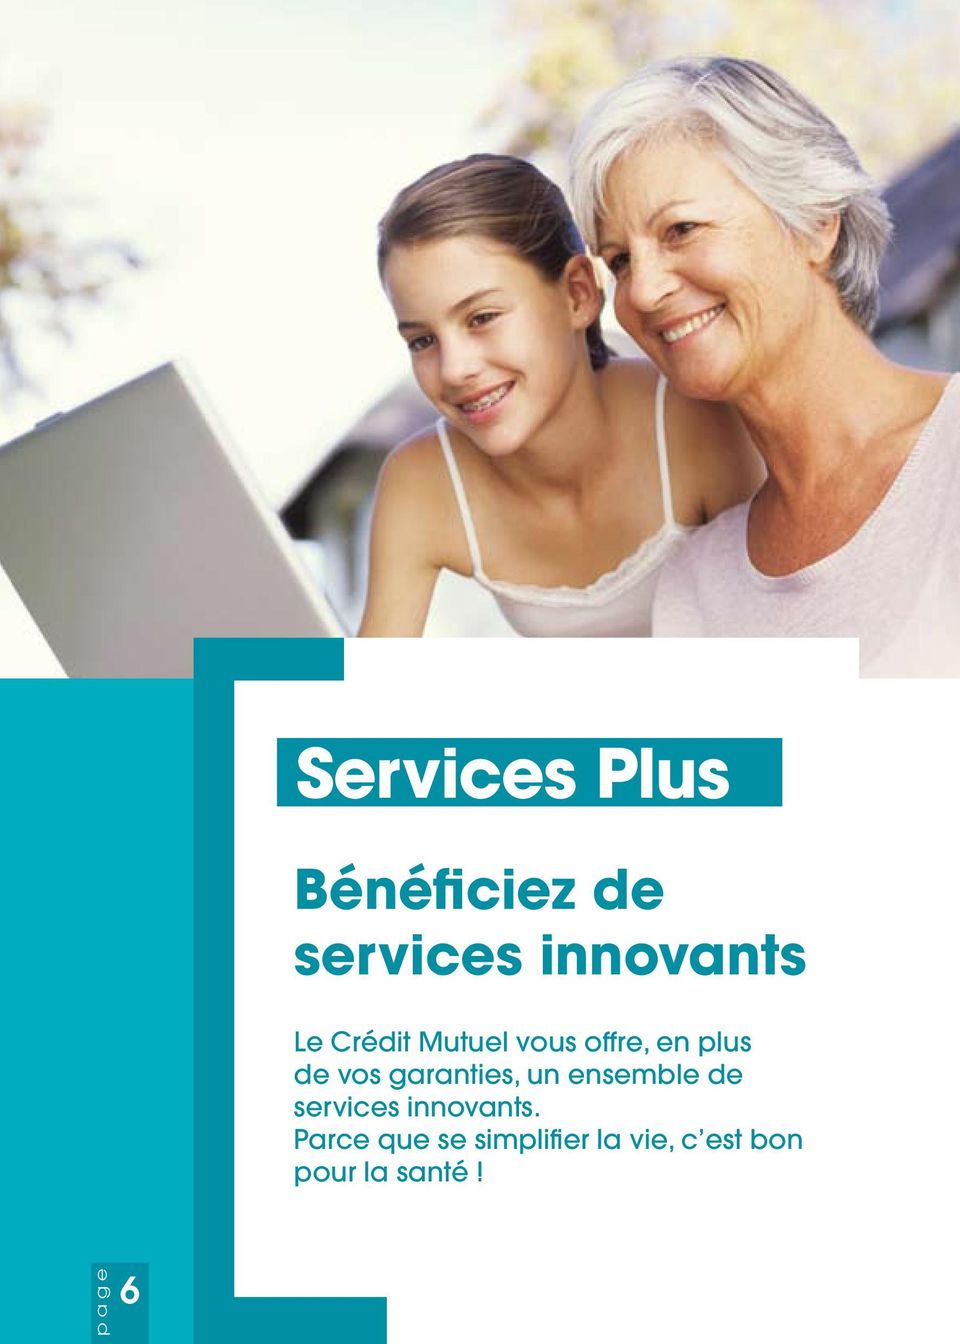 garanties, un ensemble de services innovants.